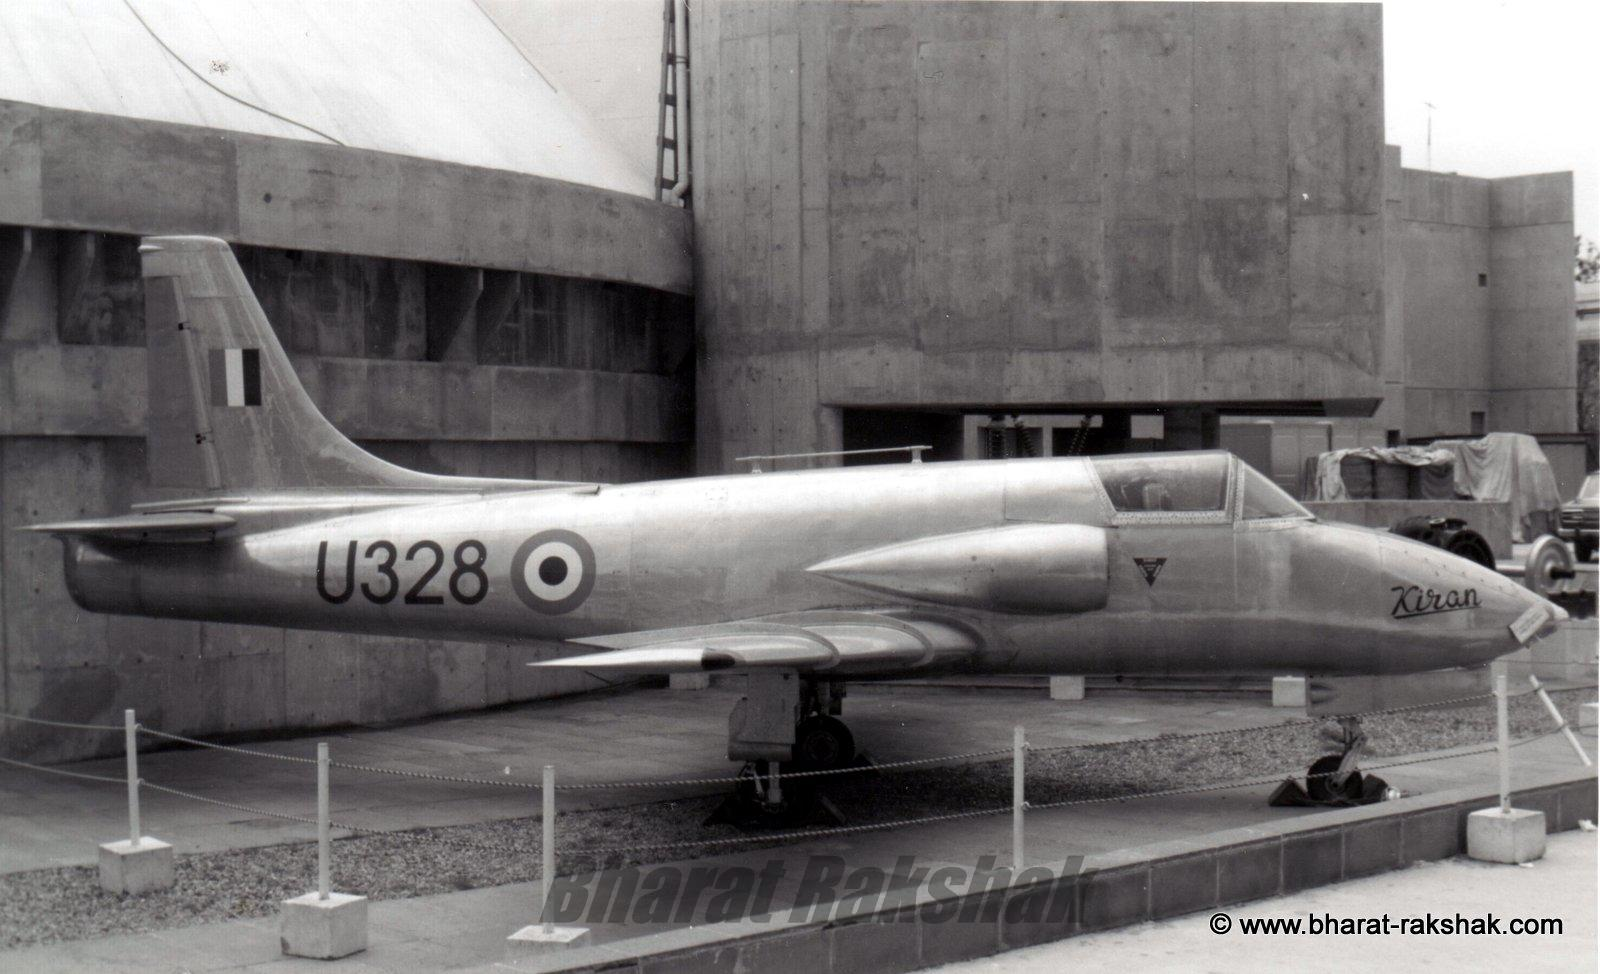 U328 - The Second Prototype